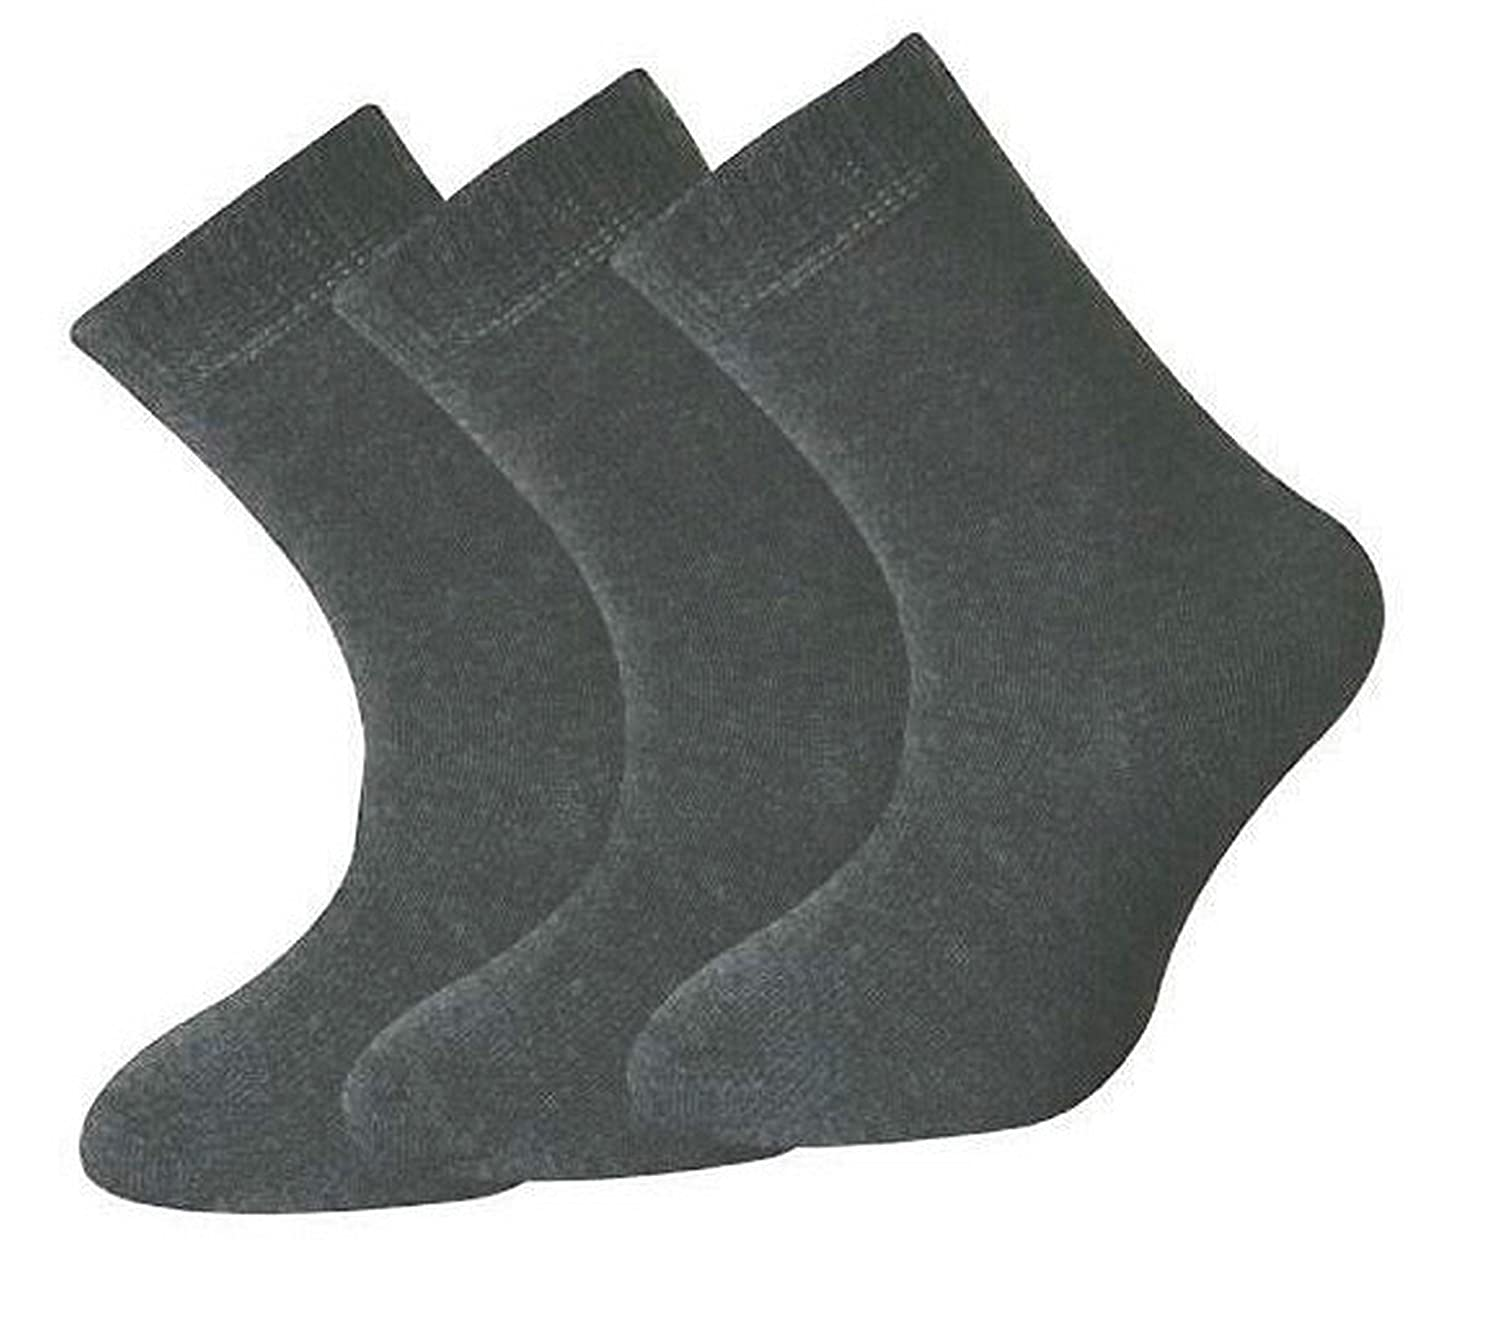 12 Pairs Boys Girls Short Ankle Cotton Rich Plain School Socks Charcoal Grey Size 3-6 Years